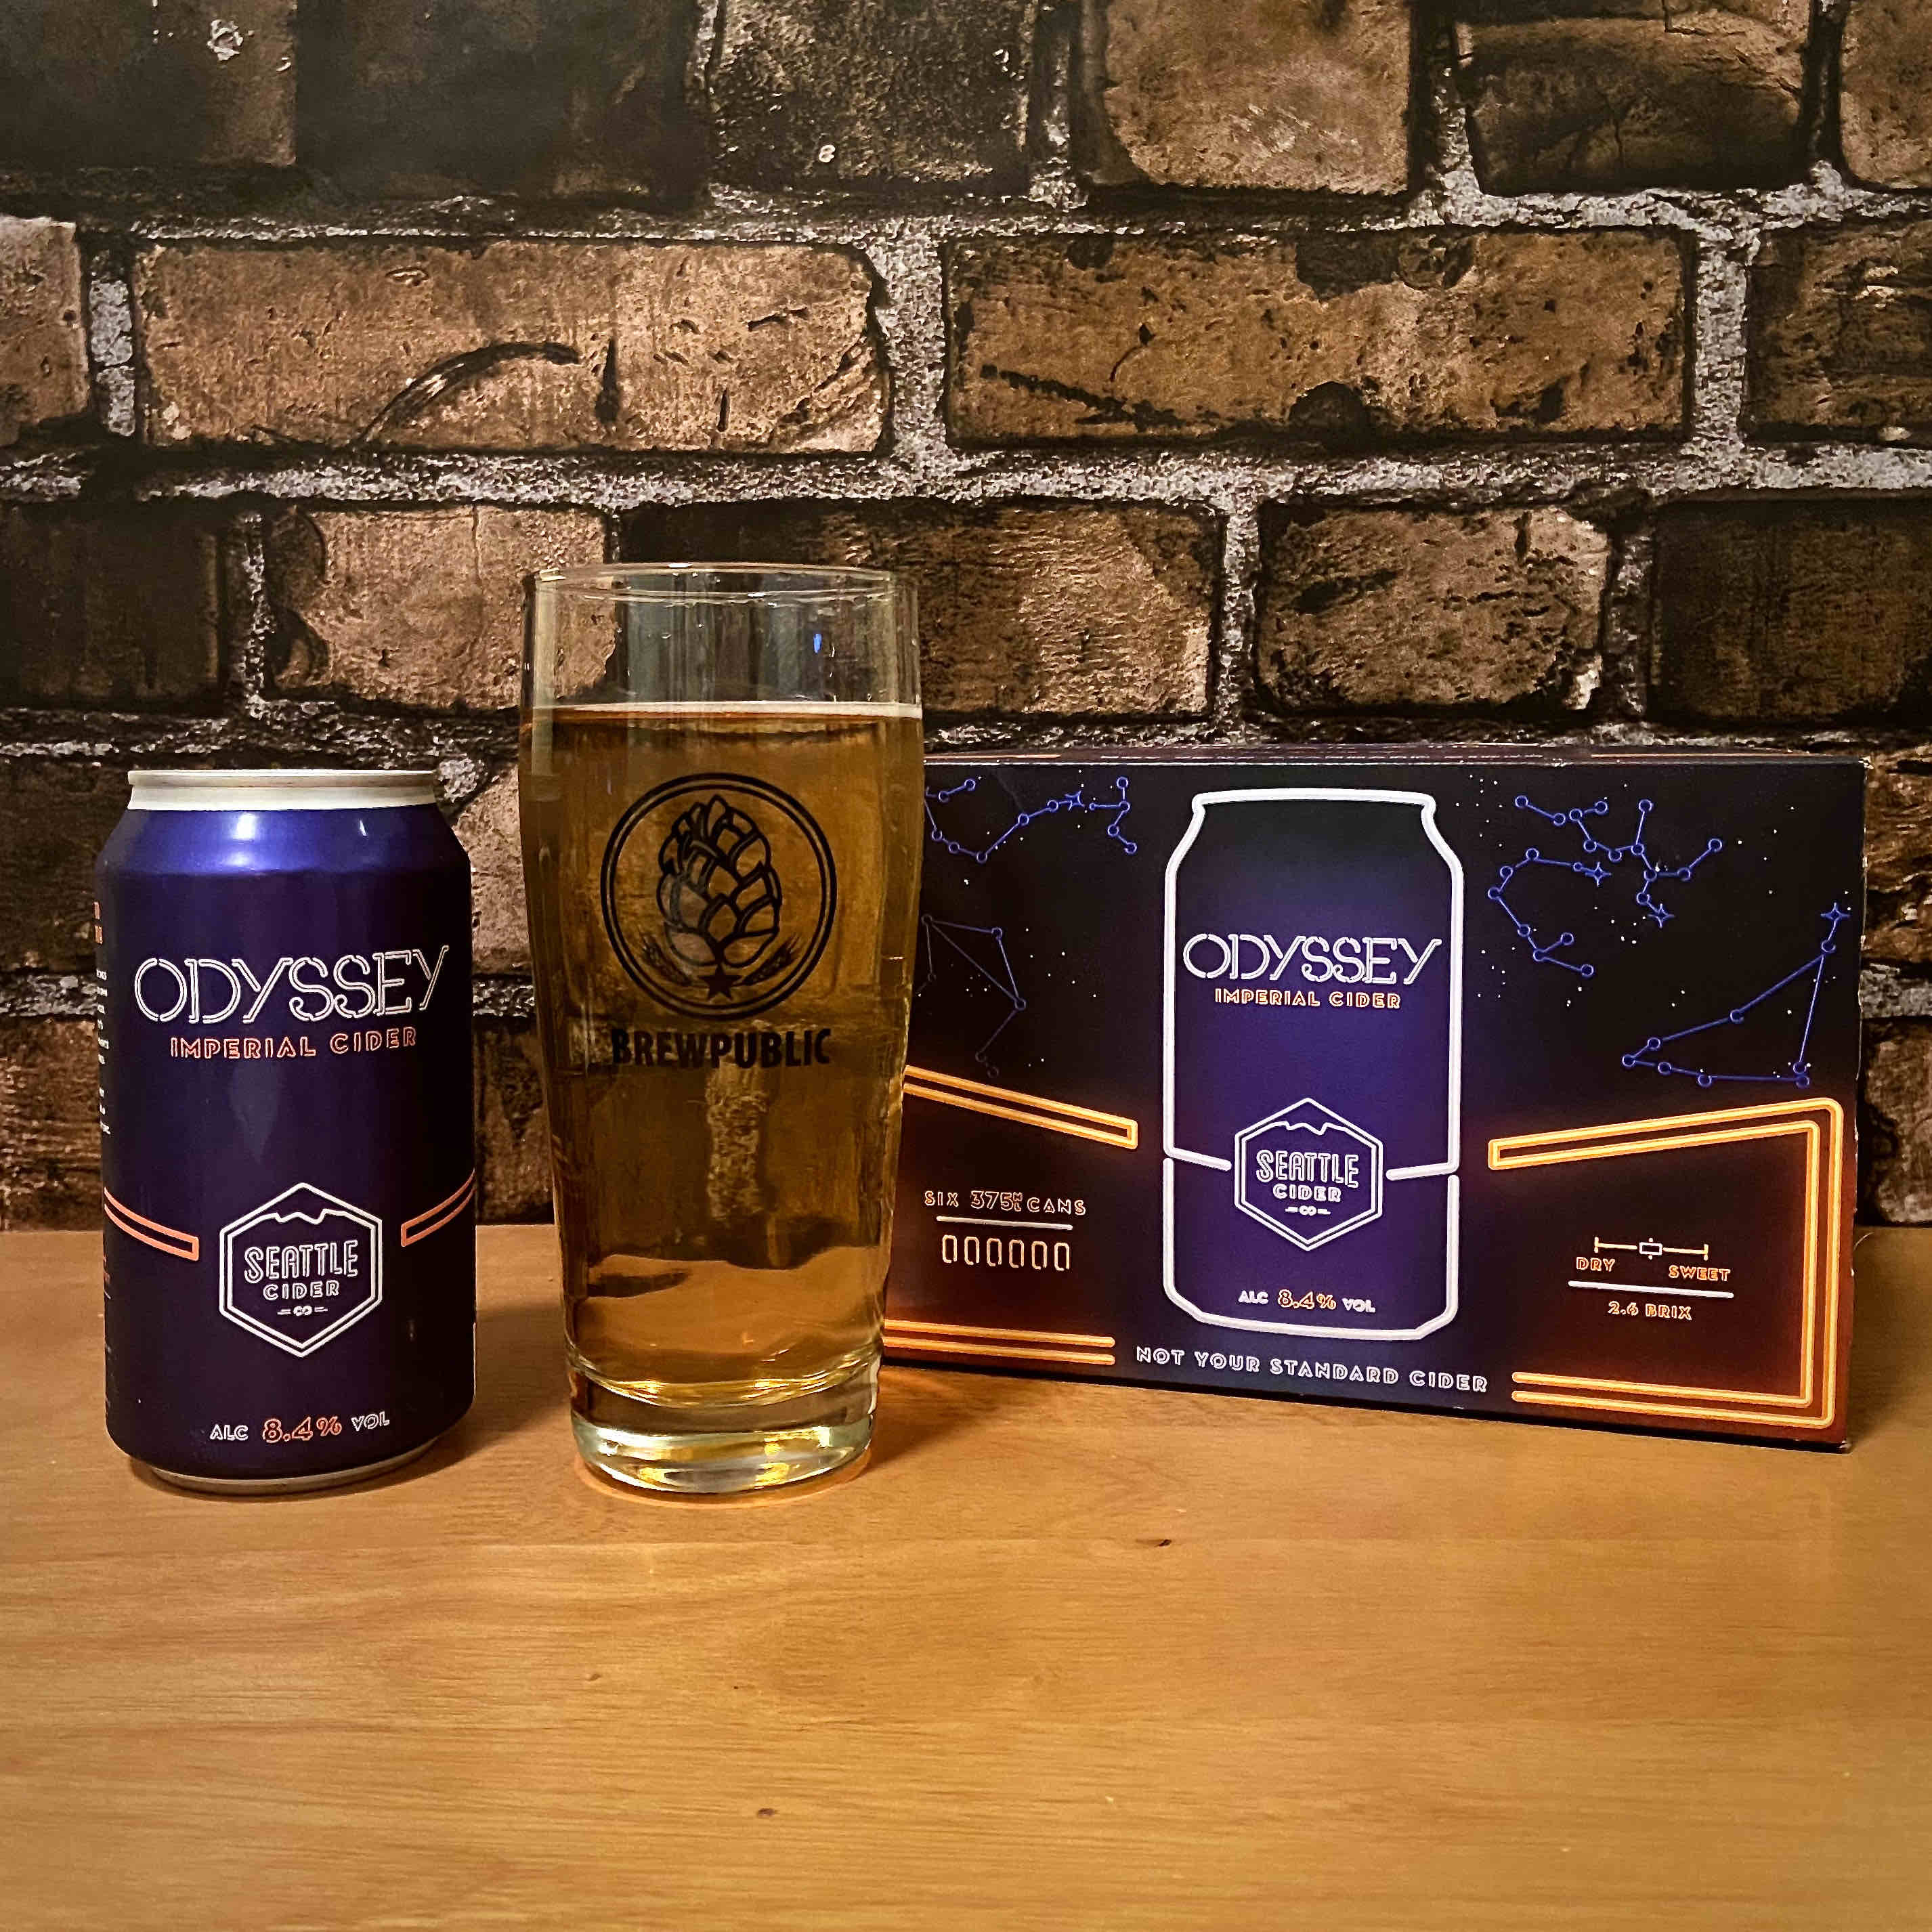 Odyssey Imperial Cider is now available in 375mL cans, a slightly larger packaging format than the standard 12oz can.